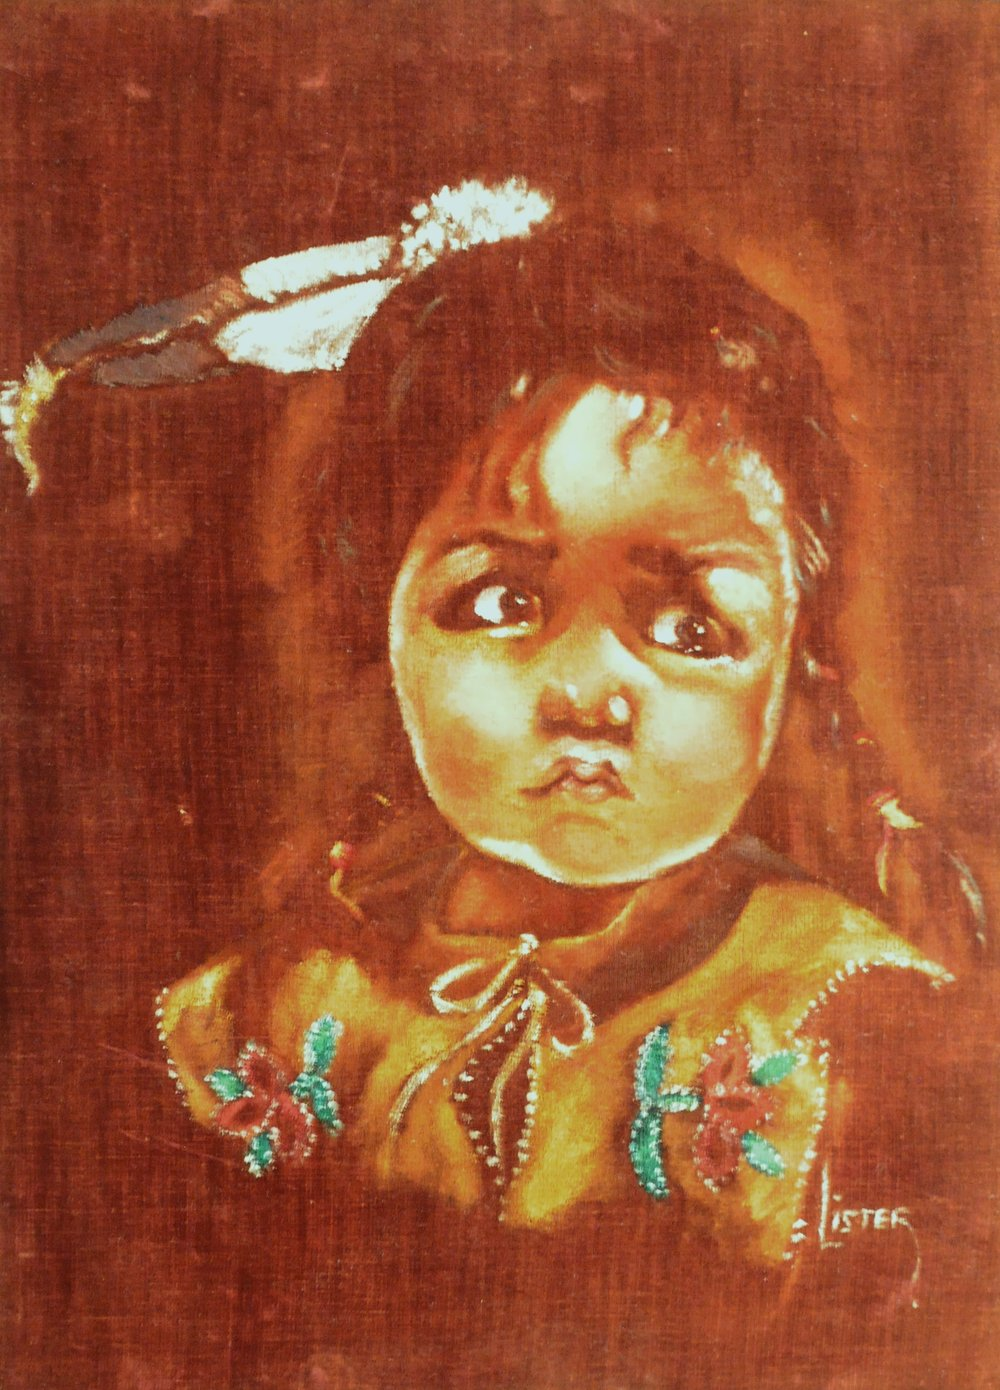 Untitled (Portrait of Child), c. 1960s, signed Lister, acrylic on velvet